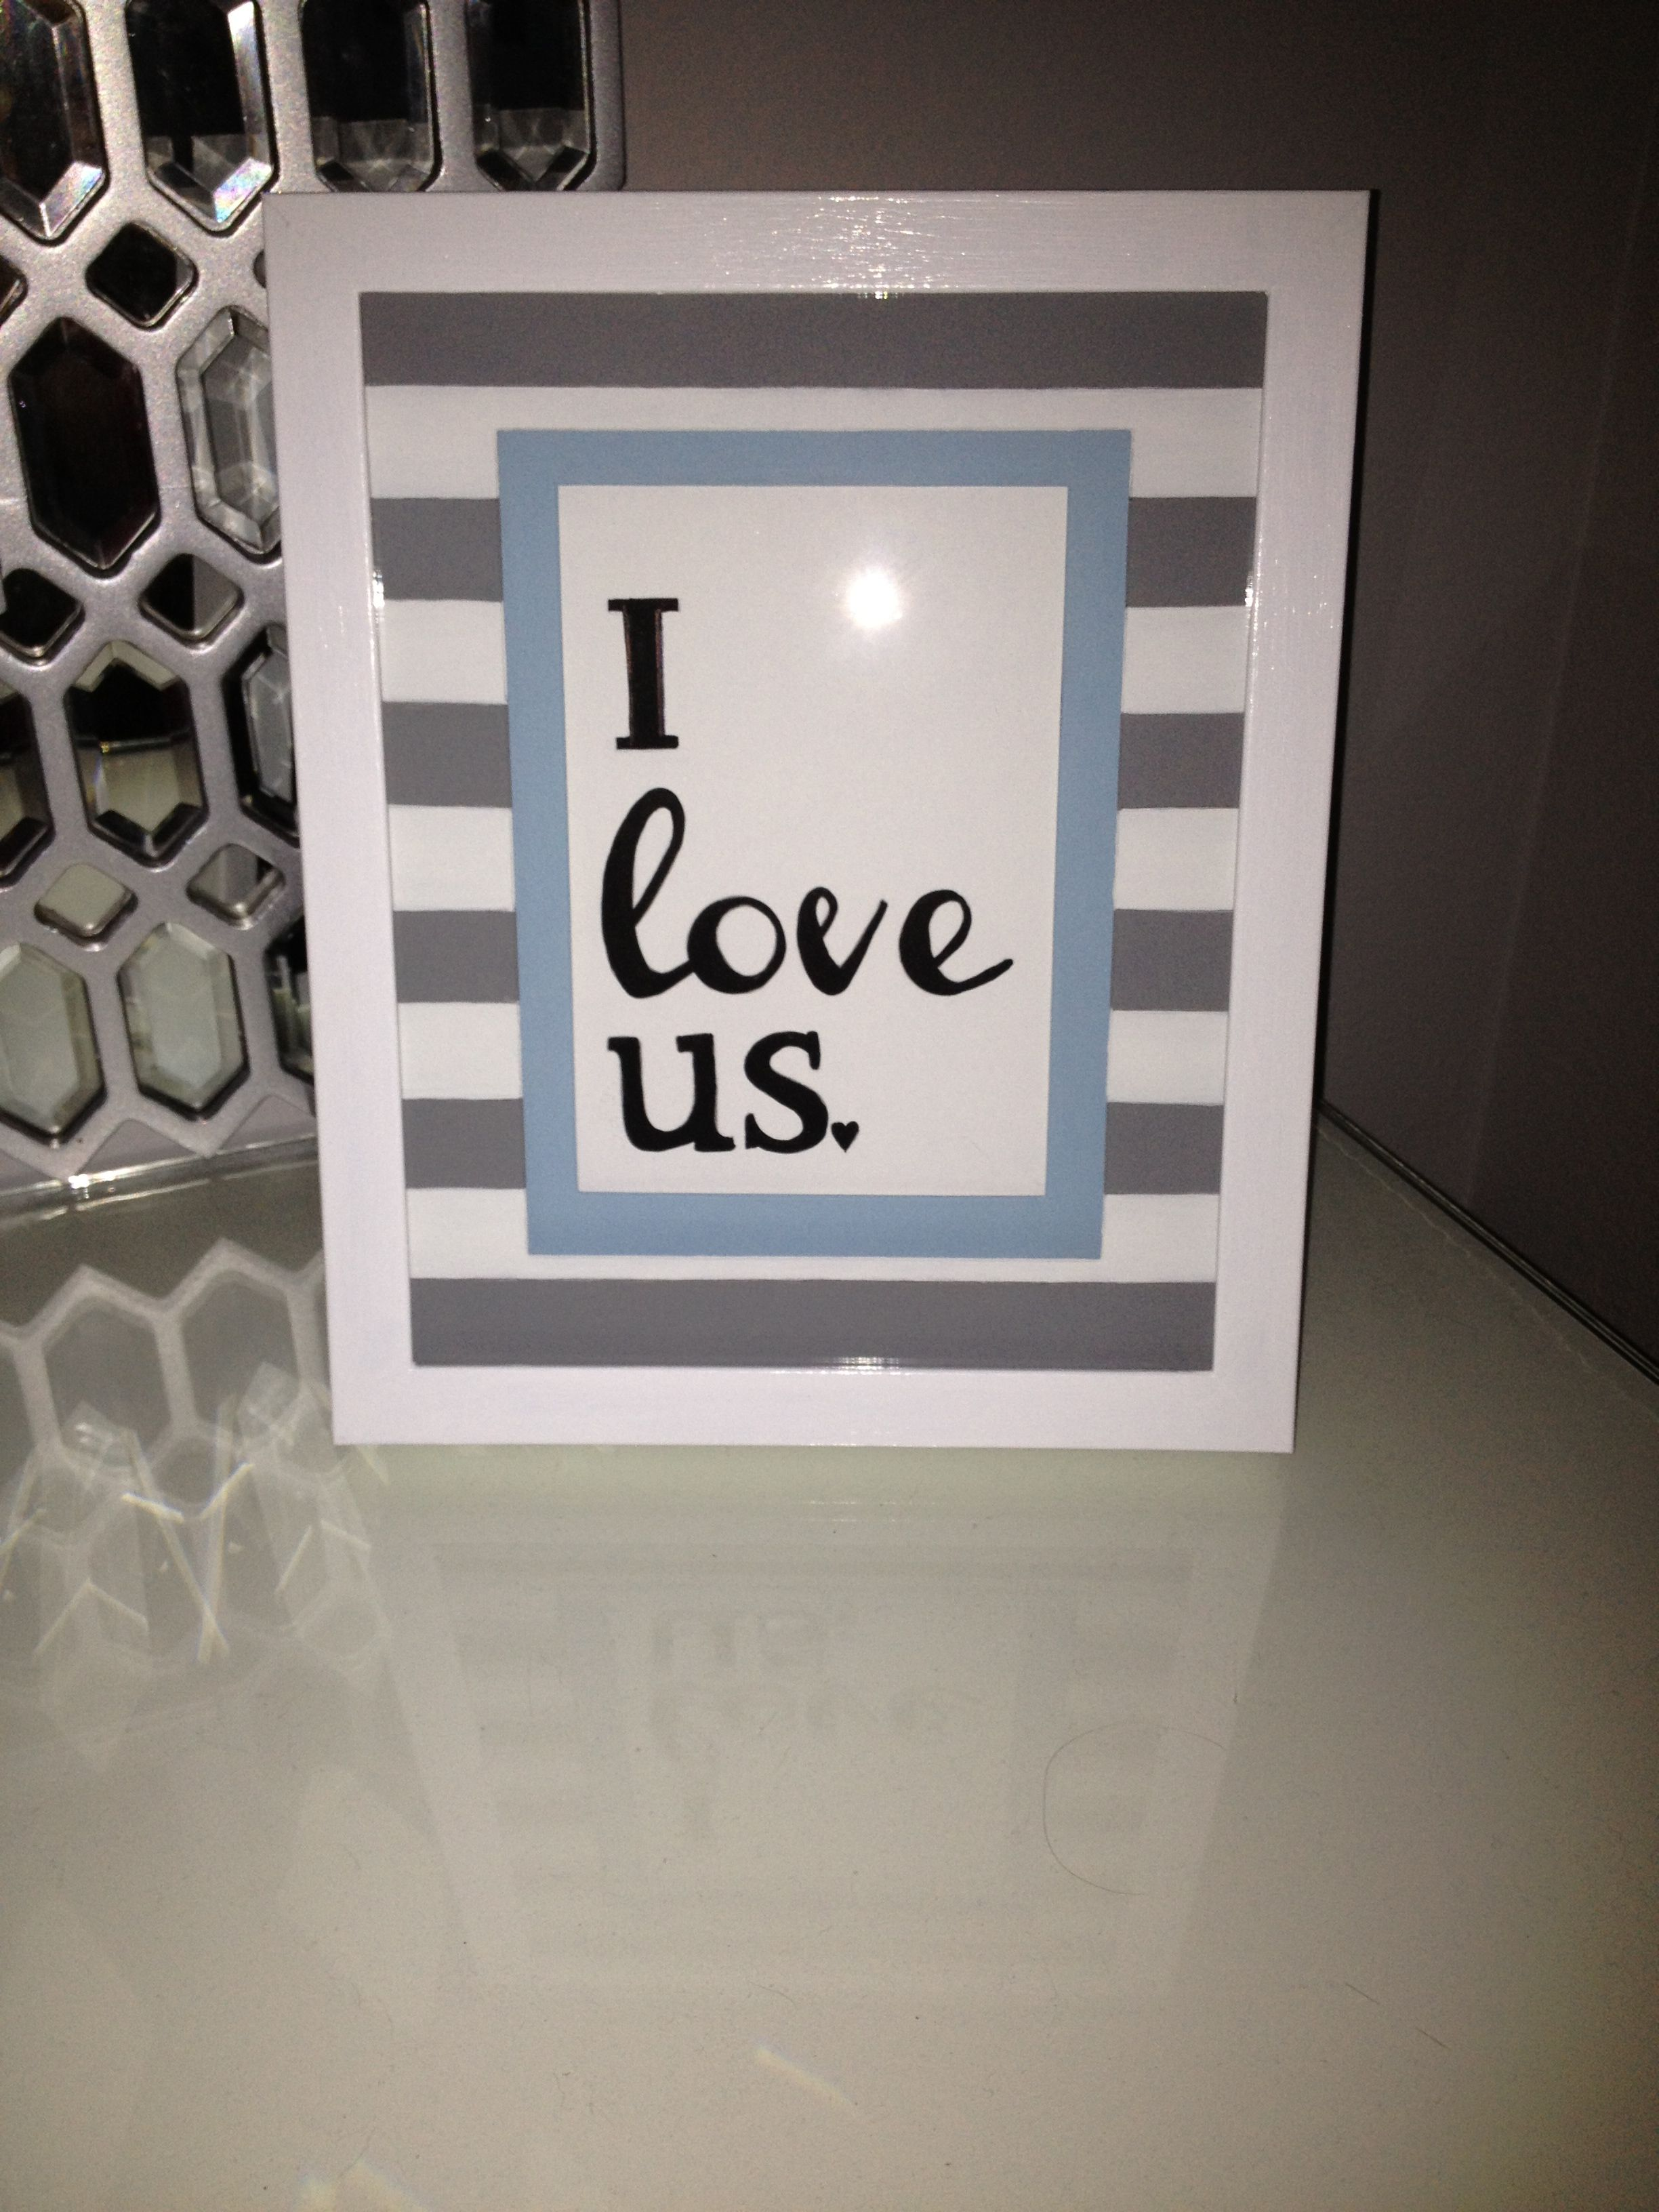 customizable frame size photo boards amazon mat mats guestbook board lobby uk to zoom picture letterpress of matted full mouldings hobby